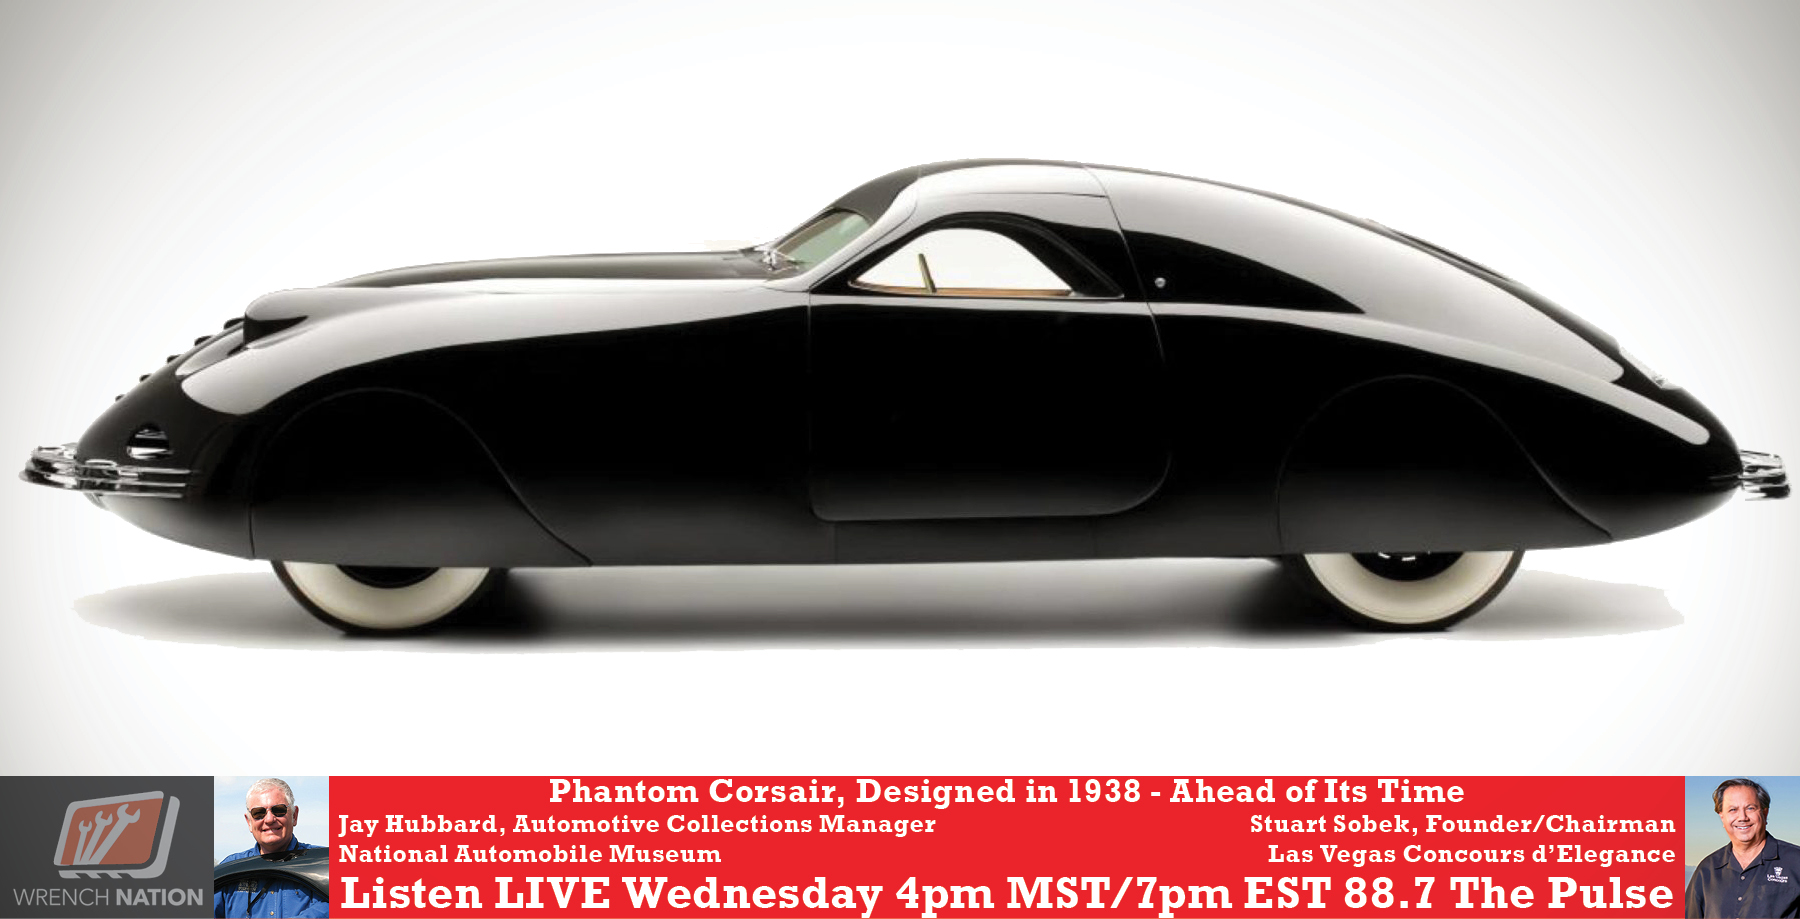 #174 1938 Phantom Corsair! From National Auto Museum to Inaugural Las Vegas Concours!